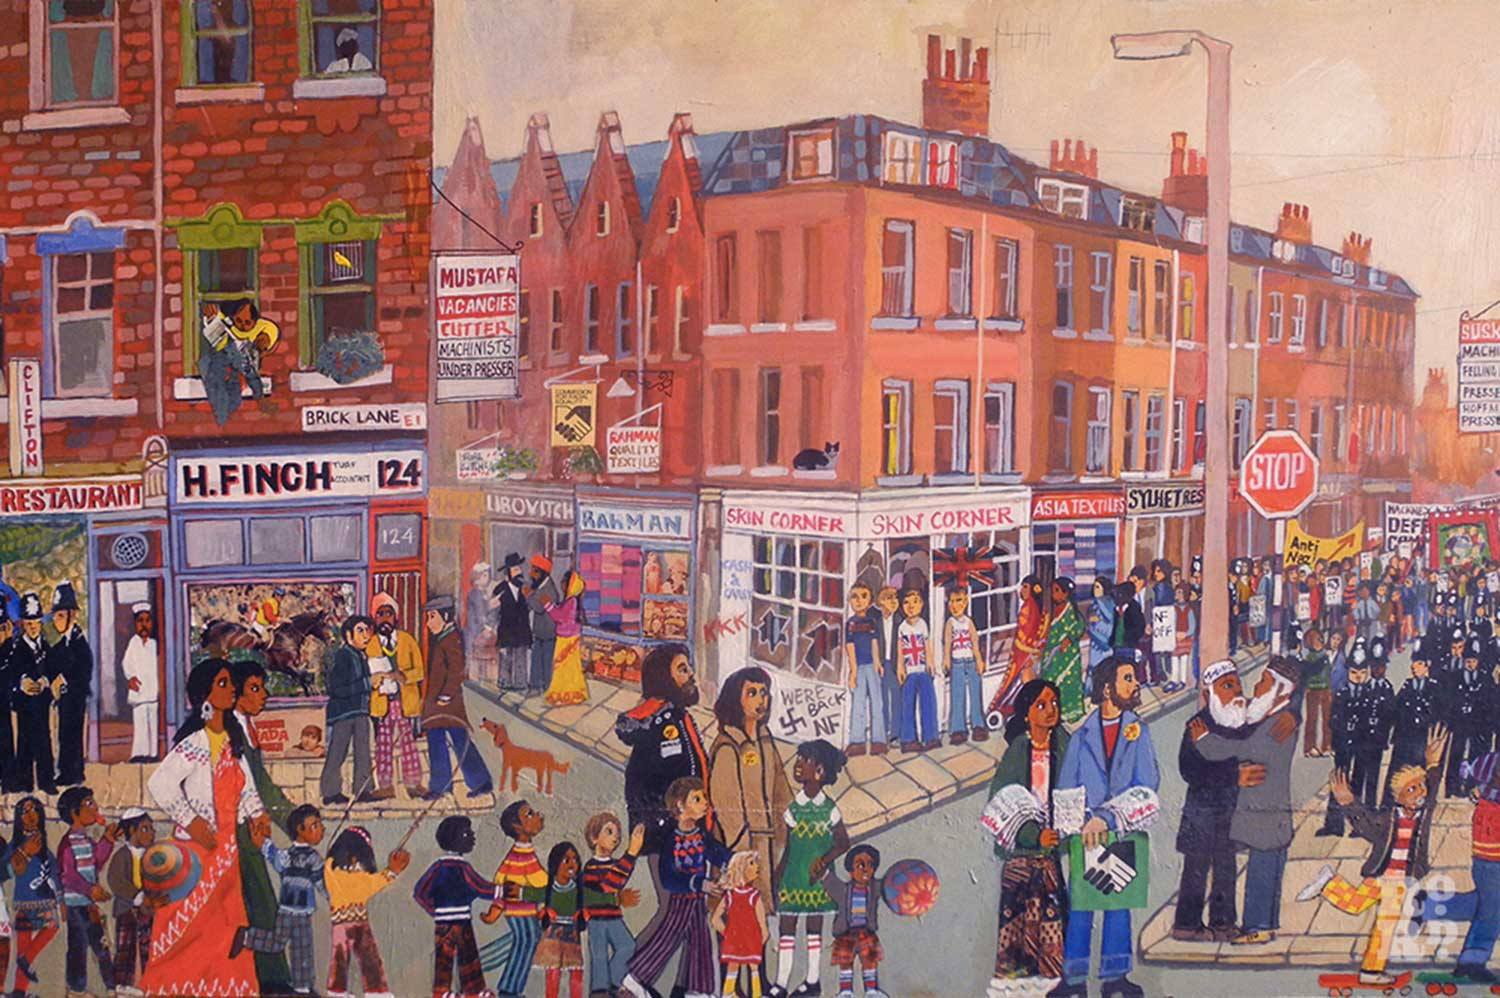 Brick Lane painting by Cable Street artist Dan Jones depicting busy east end London scene.